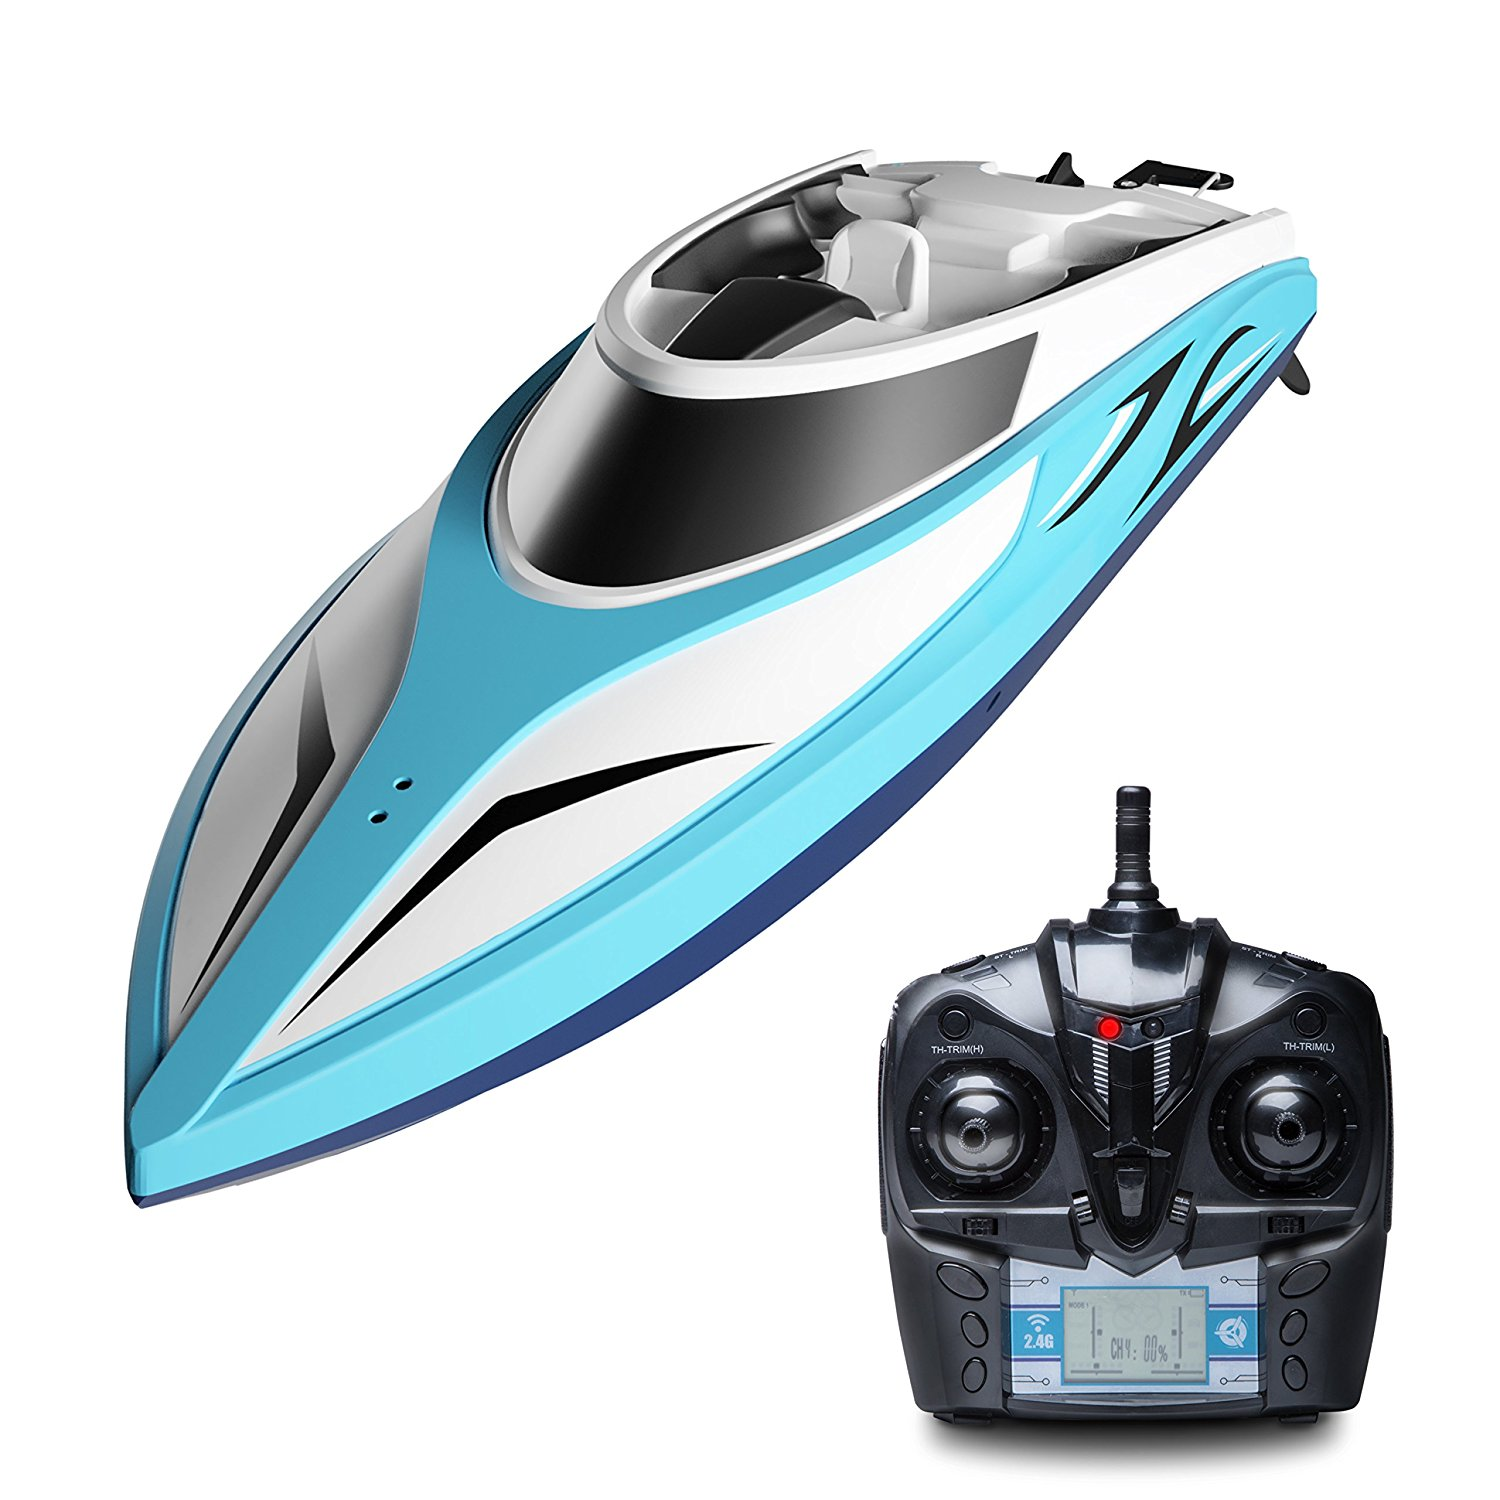 """H102 Velocity"" High Speed Remote Control Boat with Extra Battery + Toy Boat Capsize Recovery for Fast RC Boat Racing"